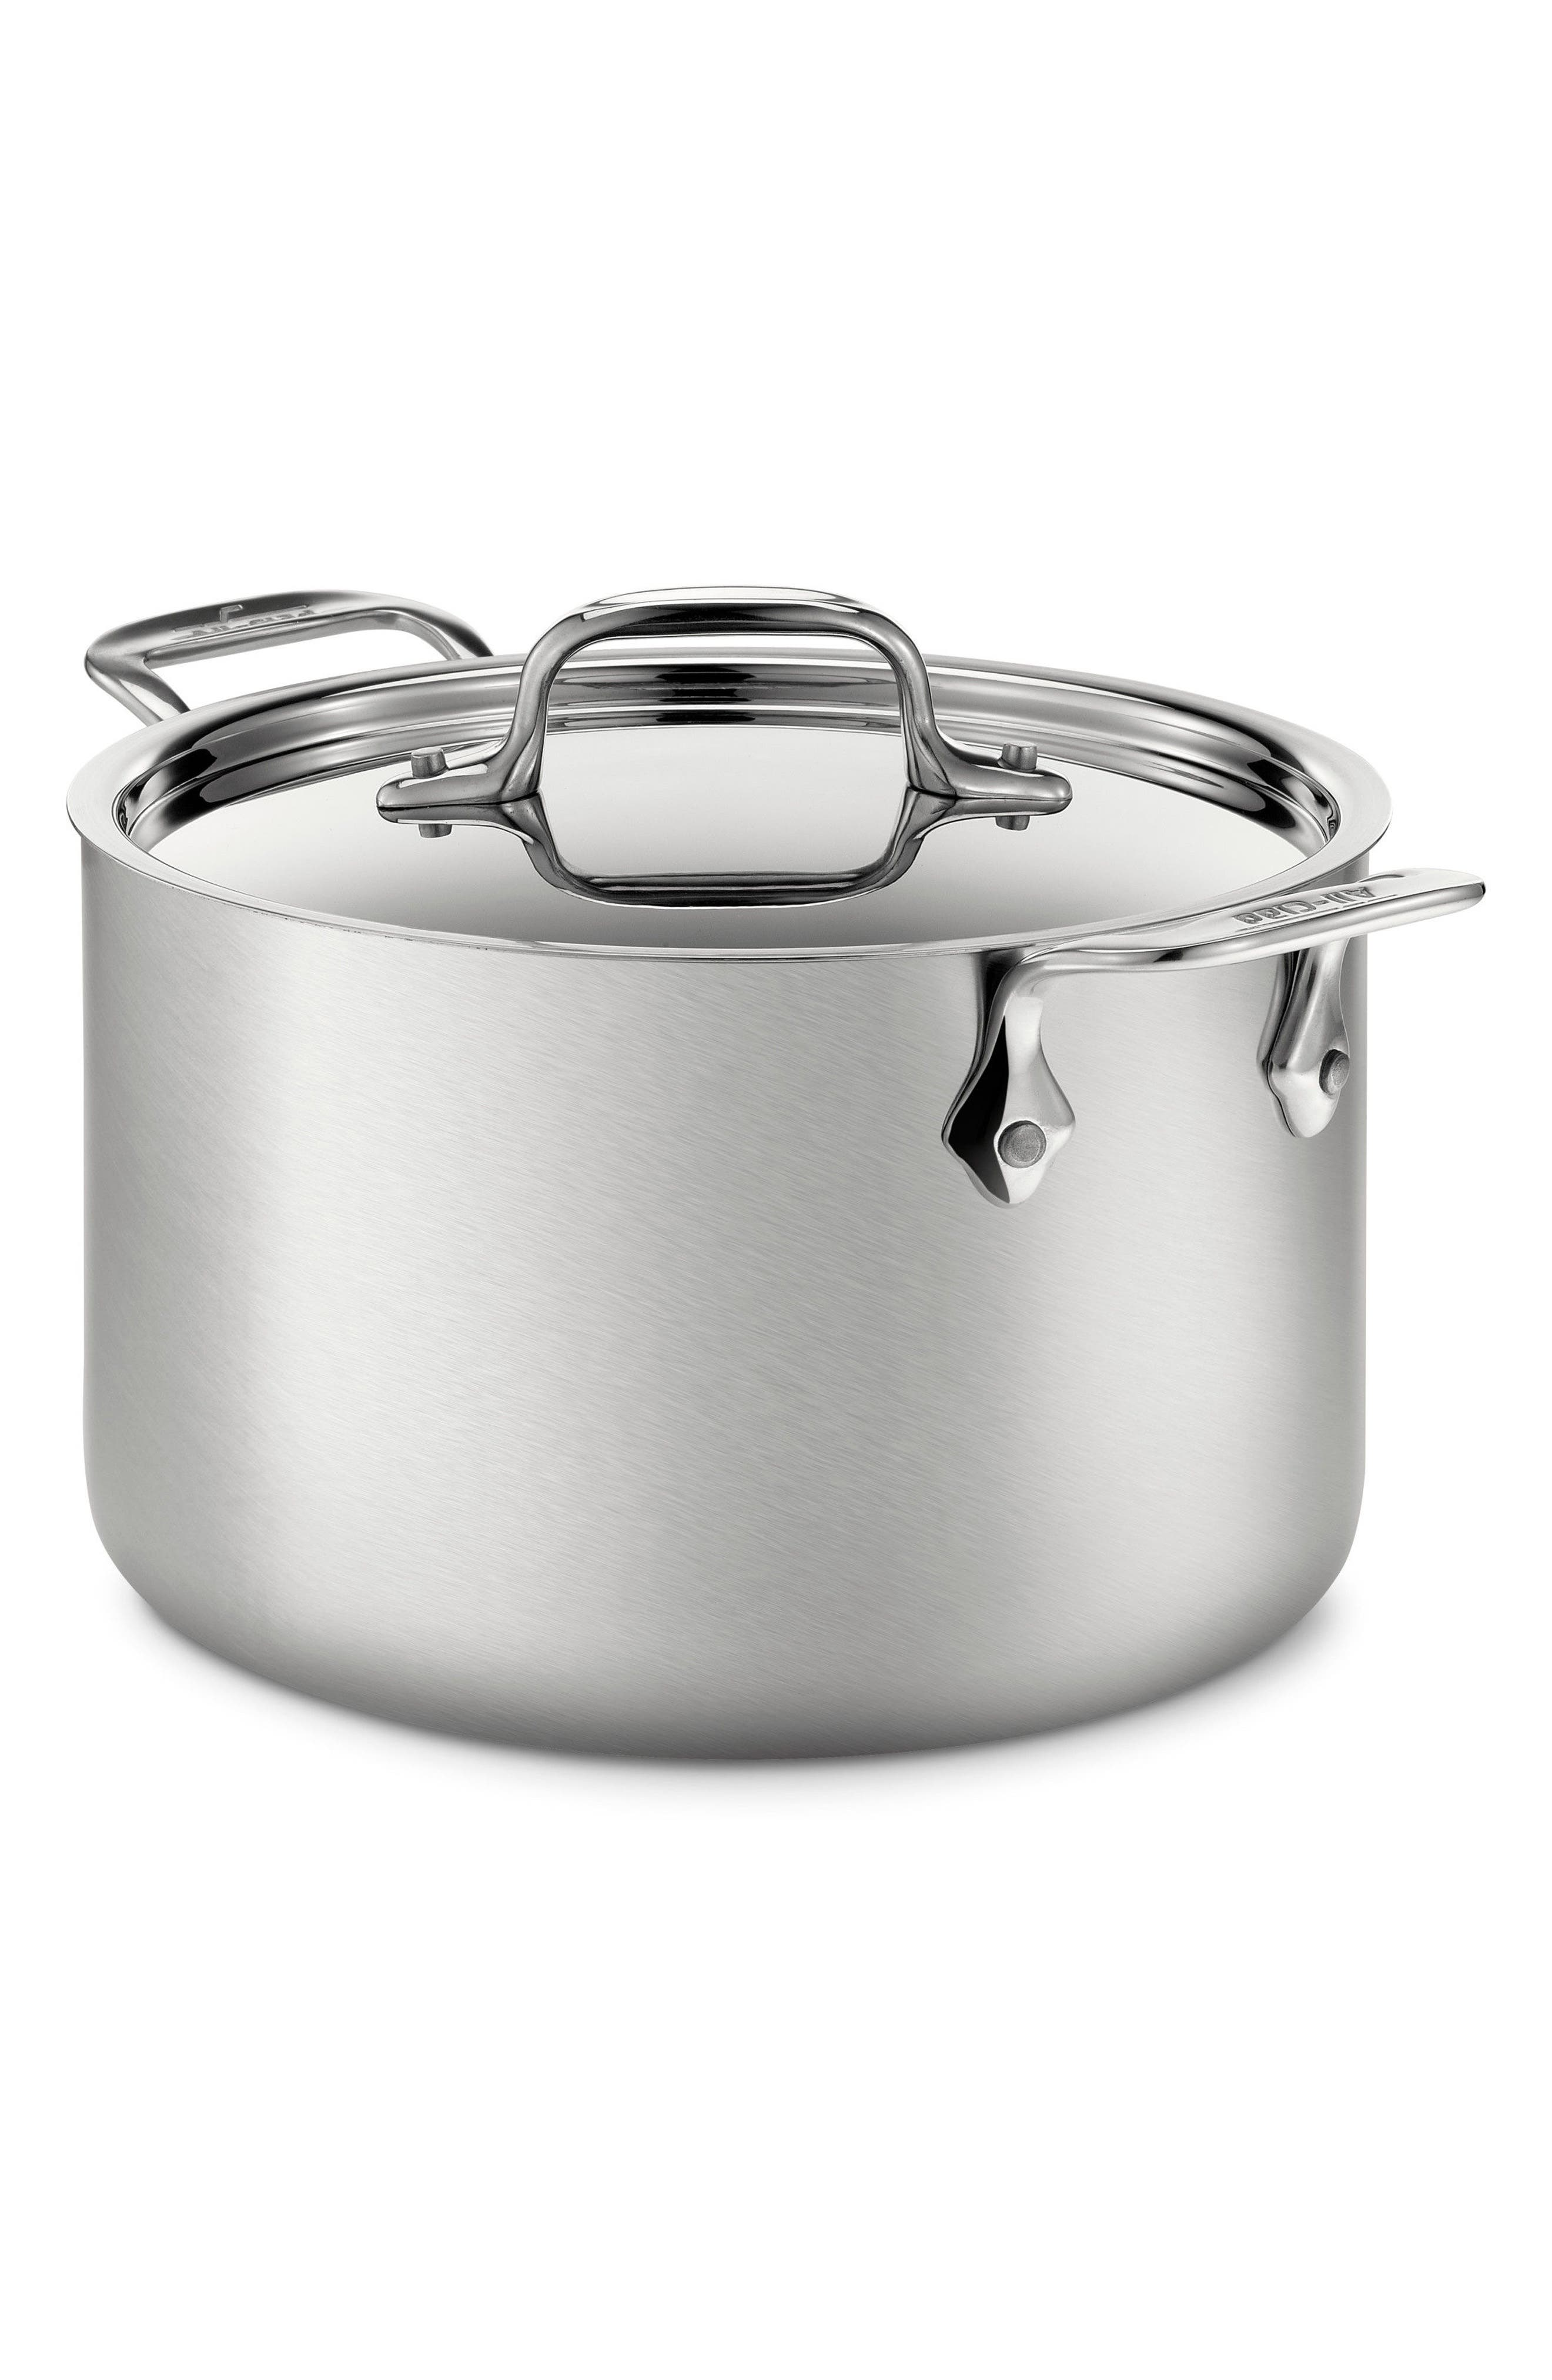 4-Quart Stainless Steel Soup Pot,                             Main thumbnail 1, color,                             Stainless